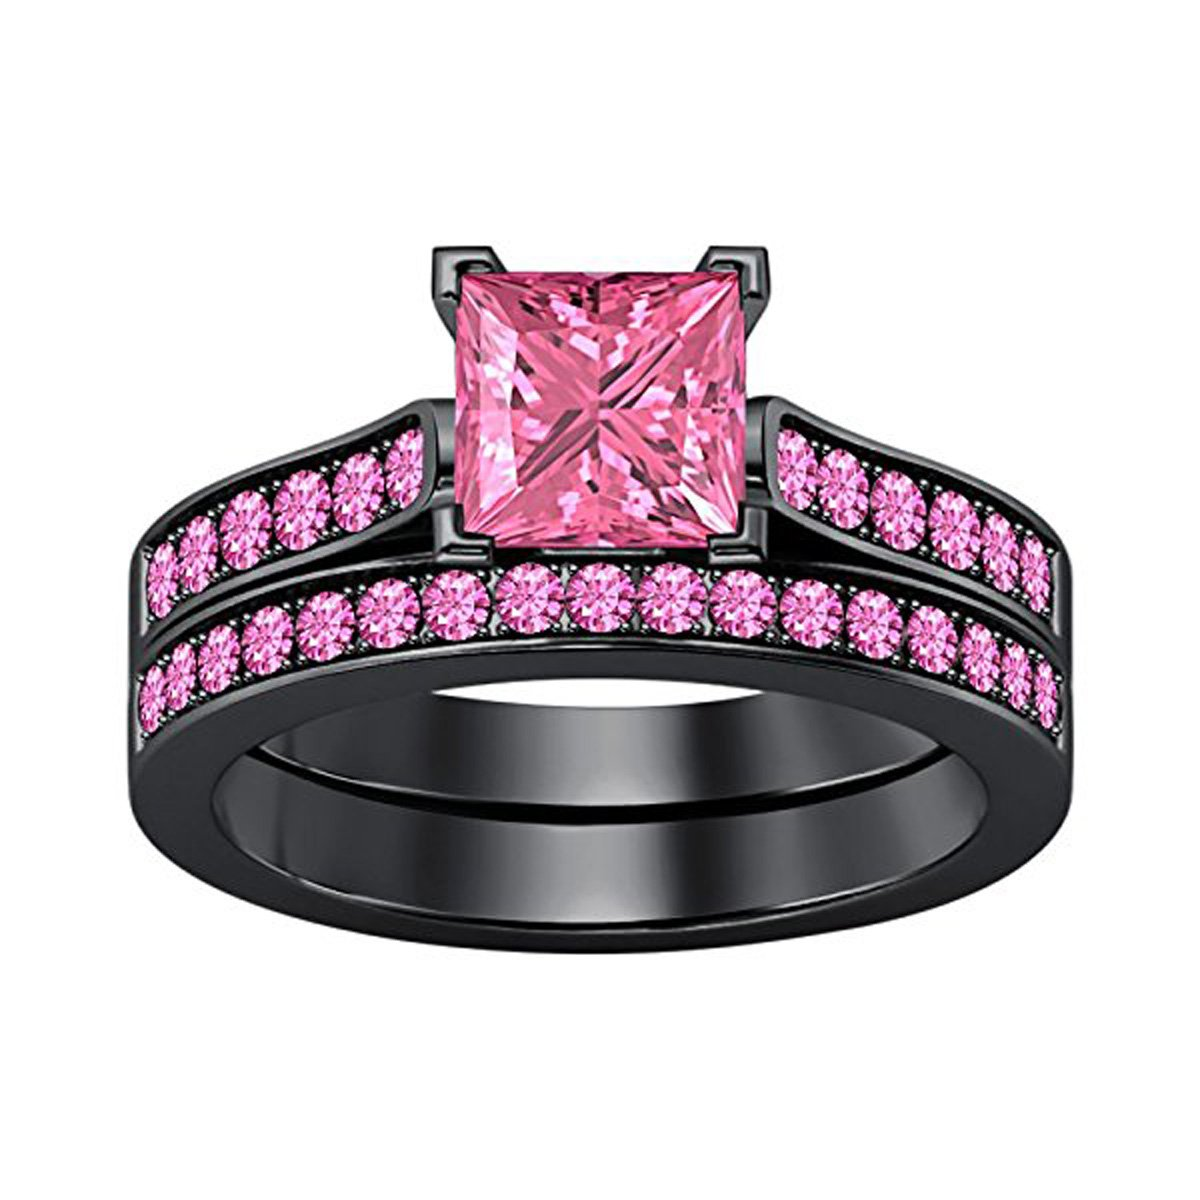 Gems and Jewels 2.75 Ct Princess Cut Pink Sapphire Wedding Band Engagement Bridal Ring Set 14K Black Gold Plated